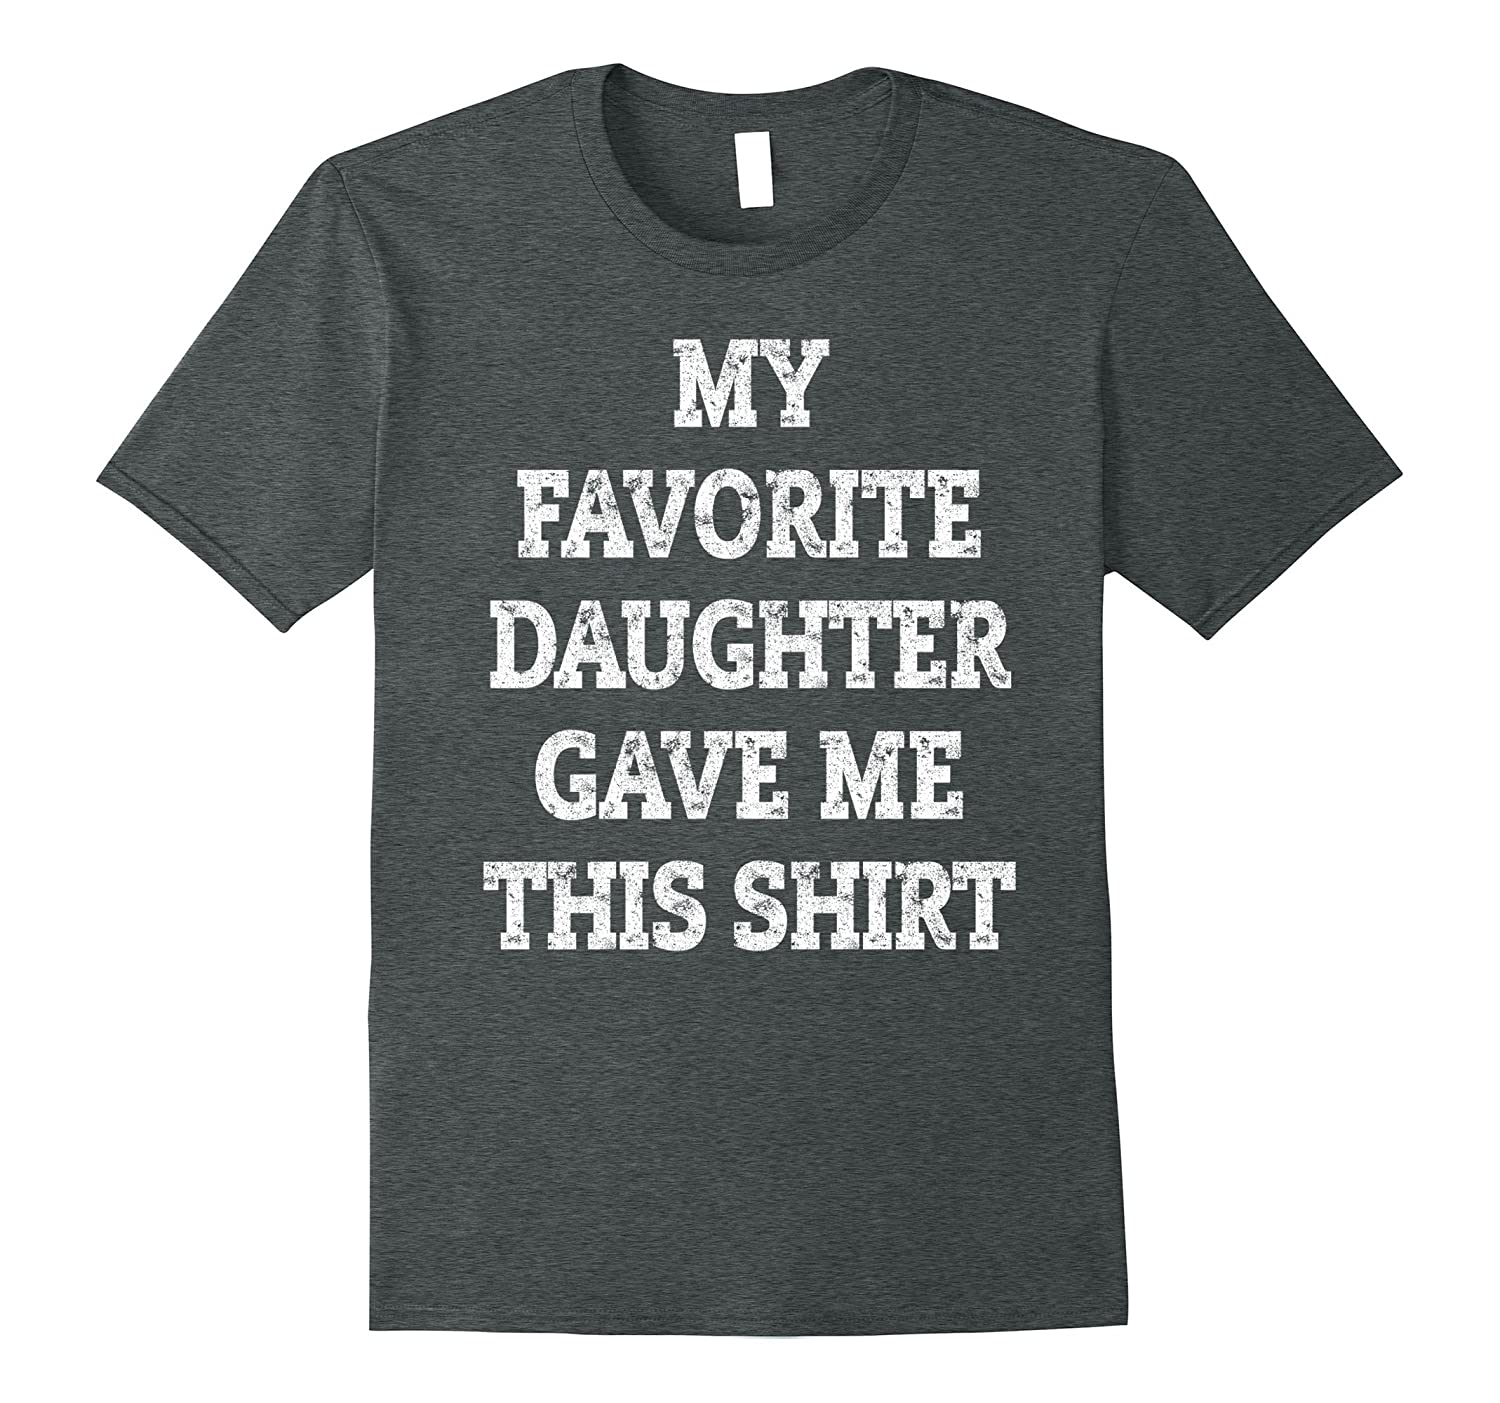 Christmas gift for dad from daughter to father bday gift for Christmas gifts for dad from daughter